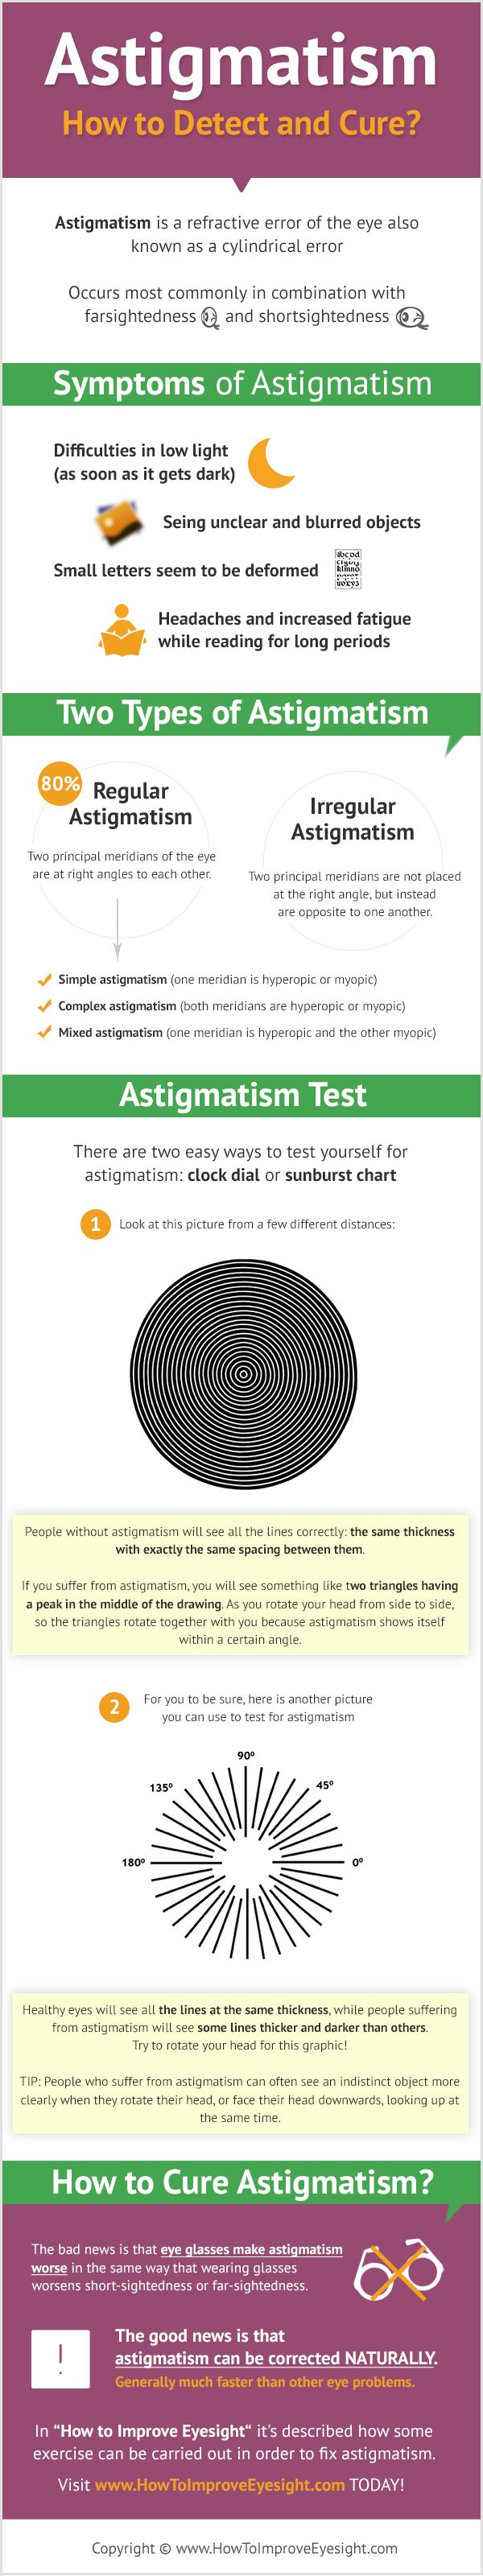 How to Detect and Cure Astigmatism #infographic #Astigmatism